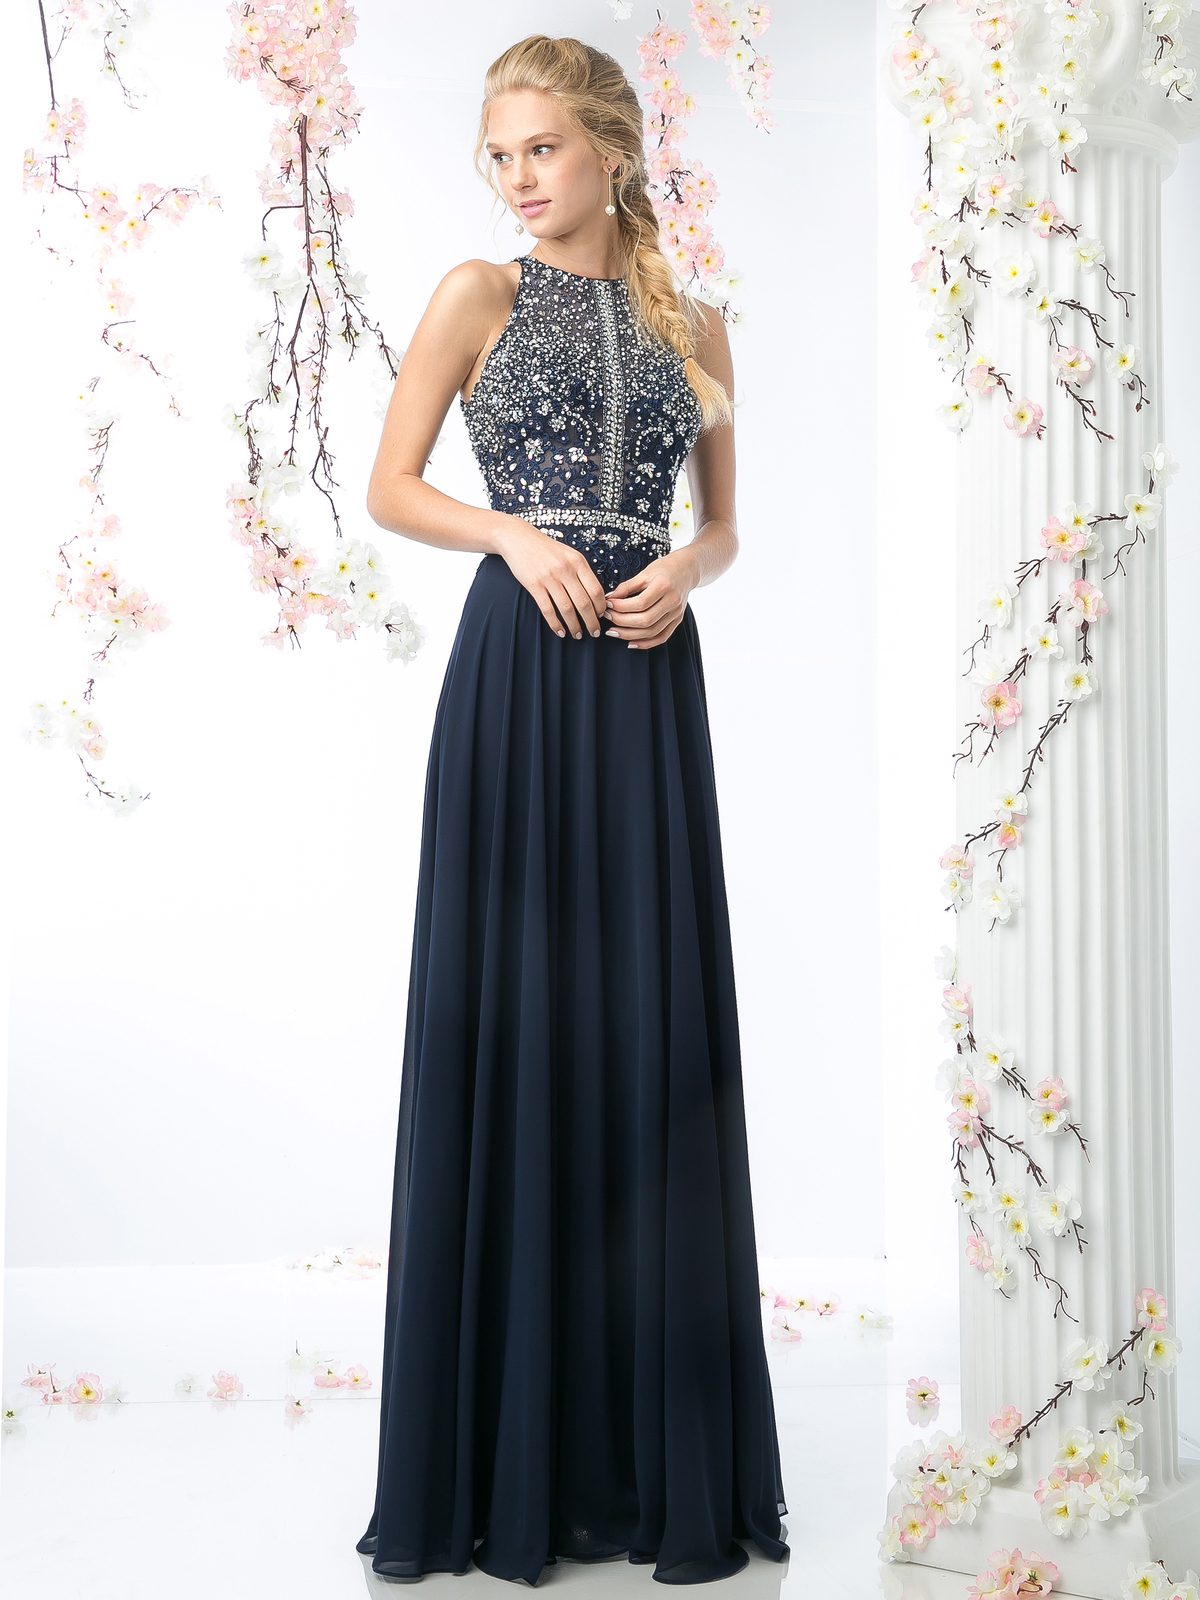 High Neck Beaded Top Prom Dress | Sung Boutique L.A.